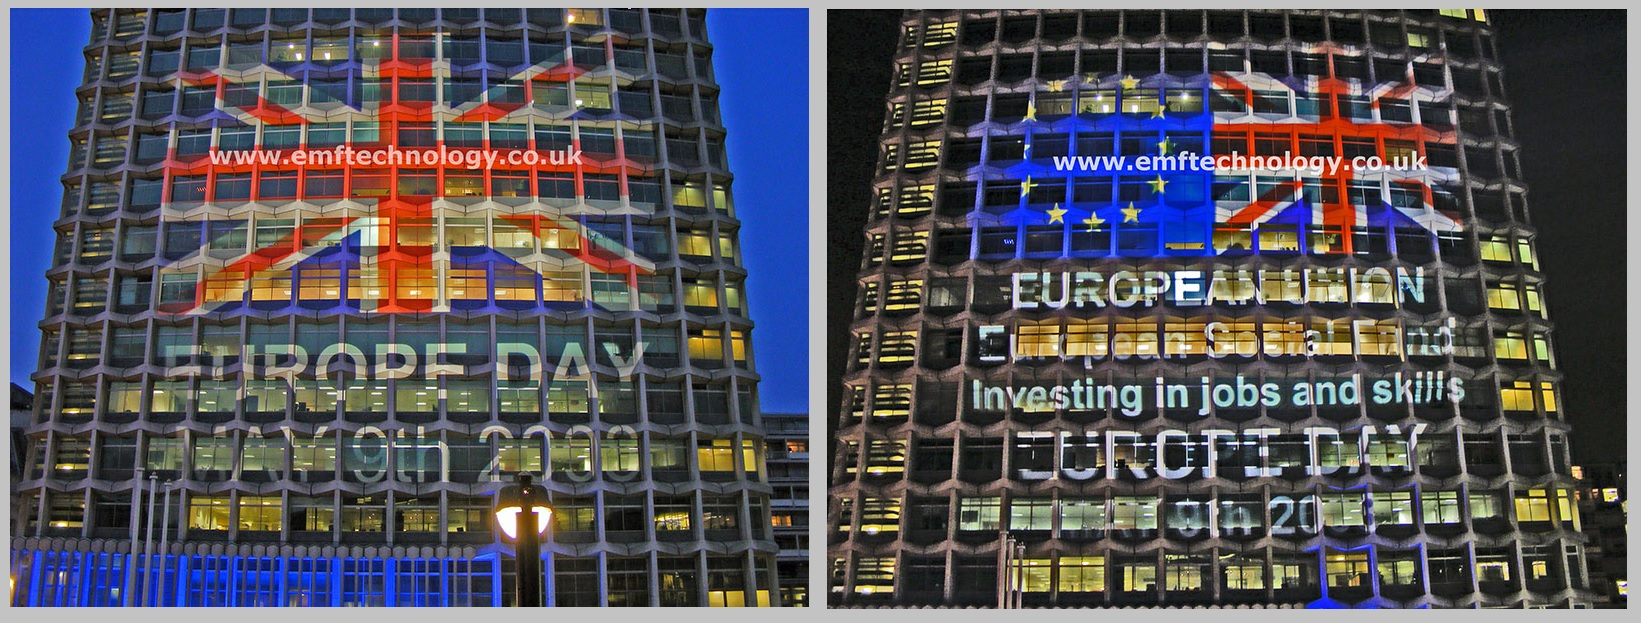 Centrepoint Building Projection for Europe Day